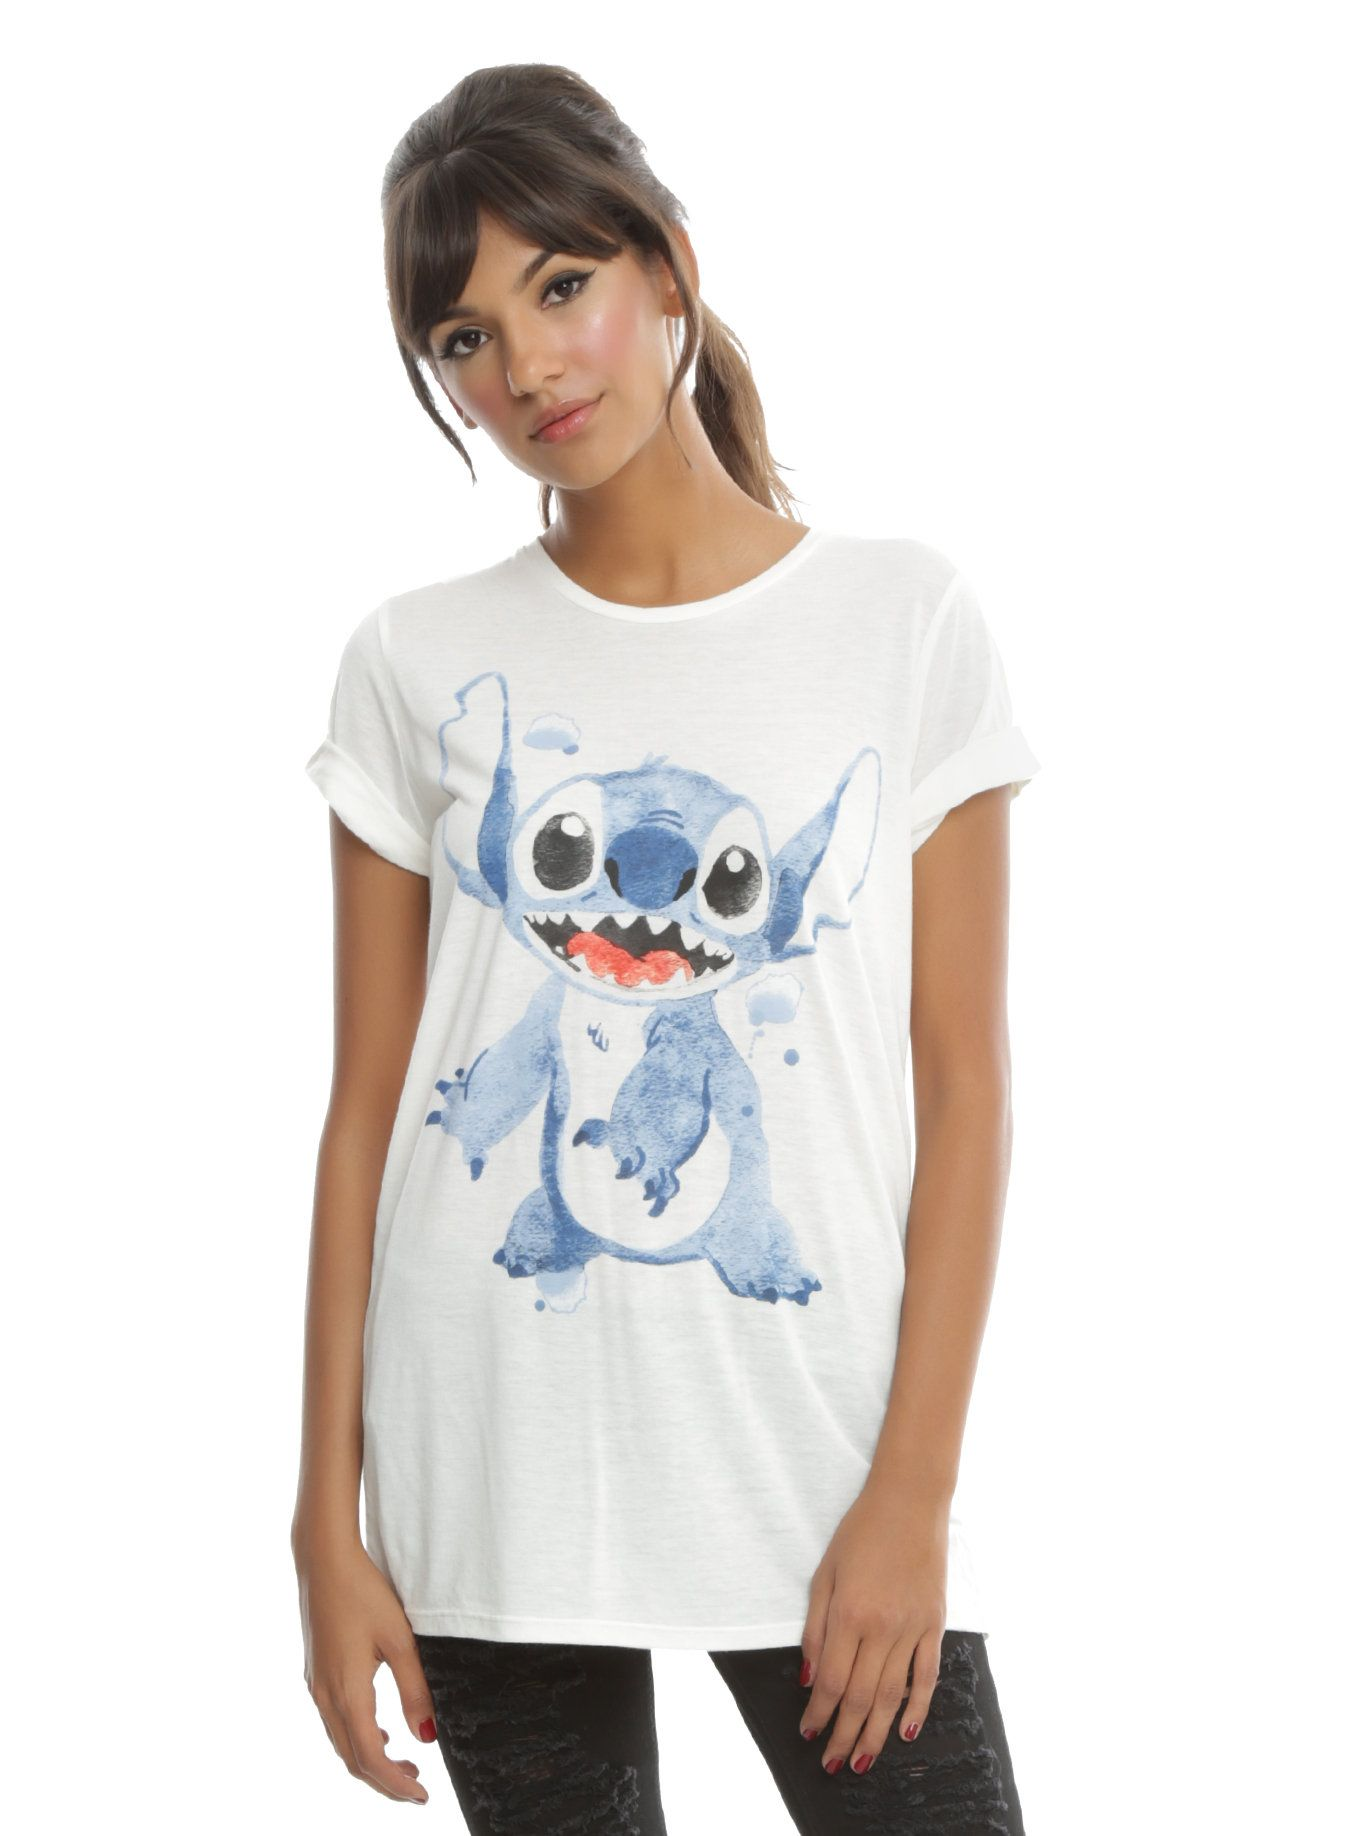 Disney Lilo Stitch Watercolor Stitch Girls T Shirt Lilo